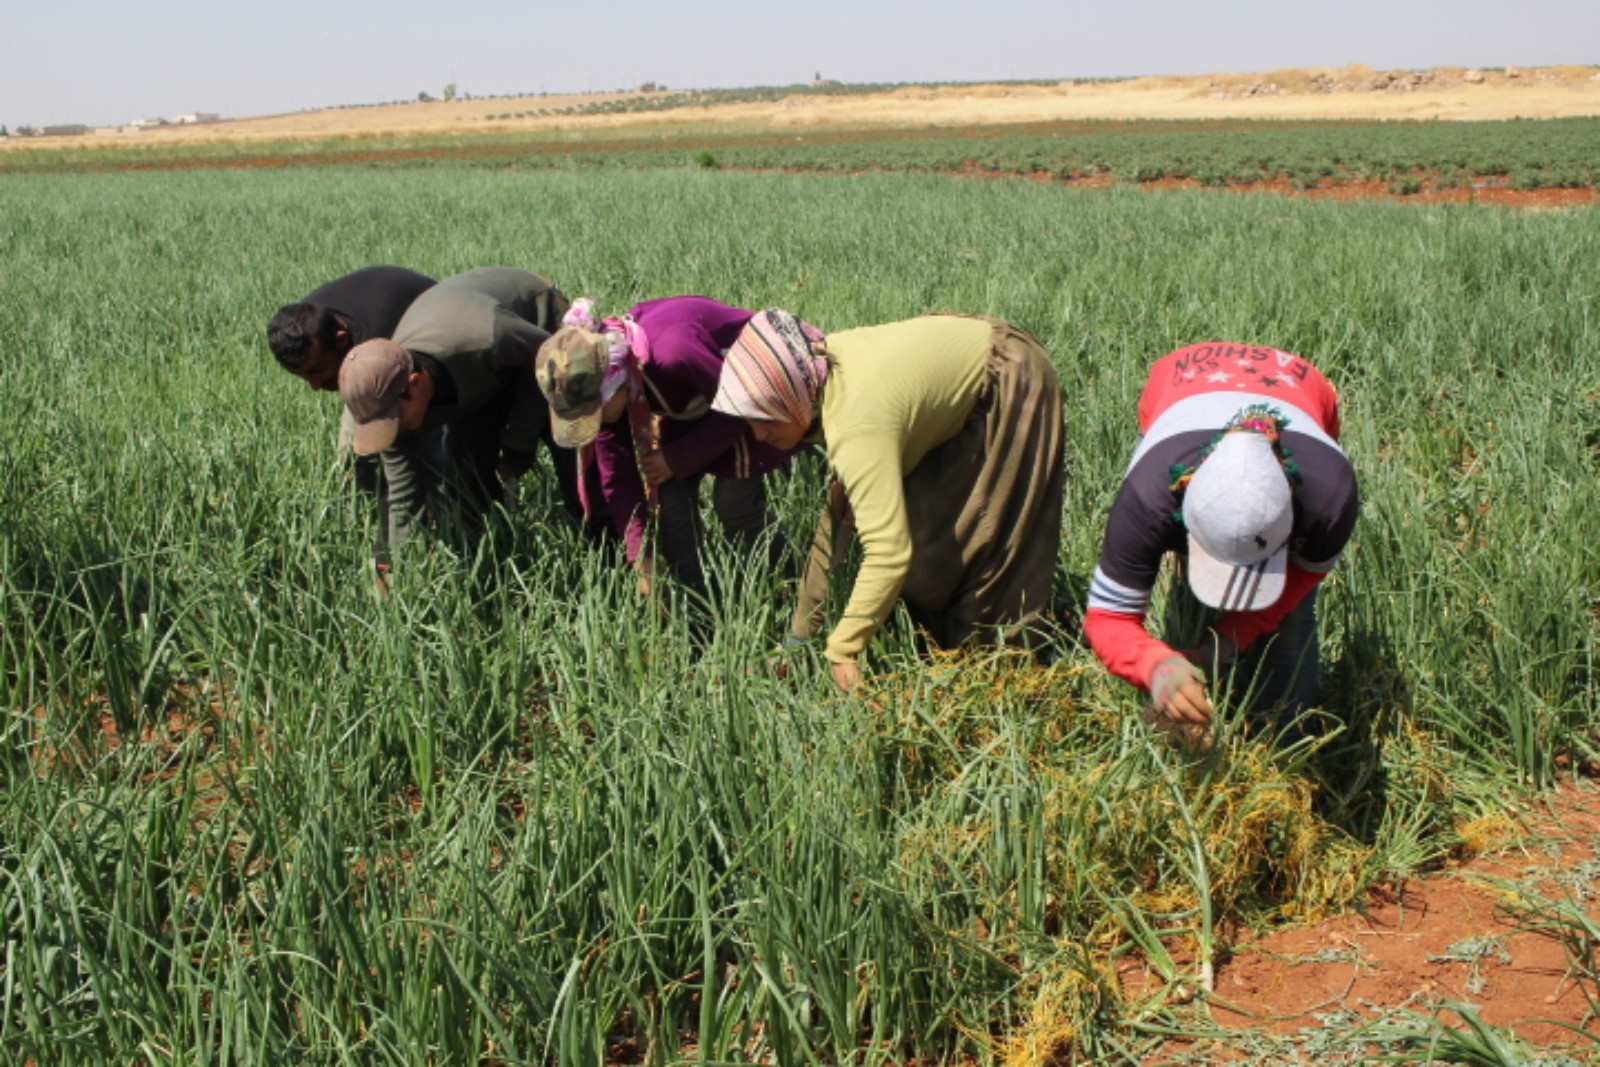 Afrin women work hard to ensure requirements after forced displacement